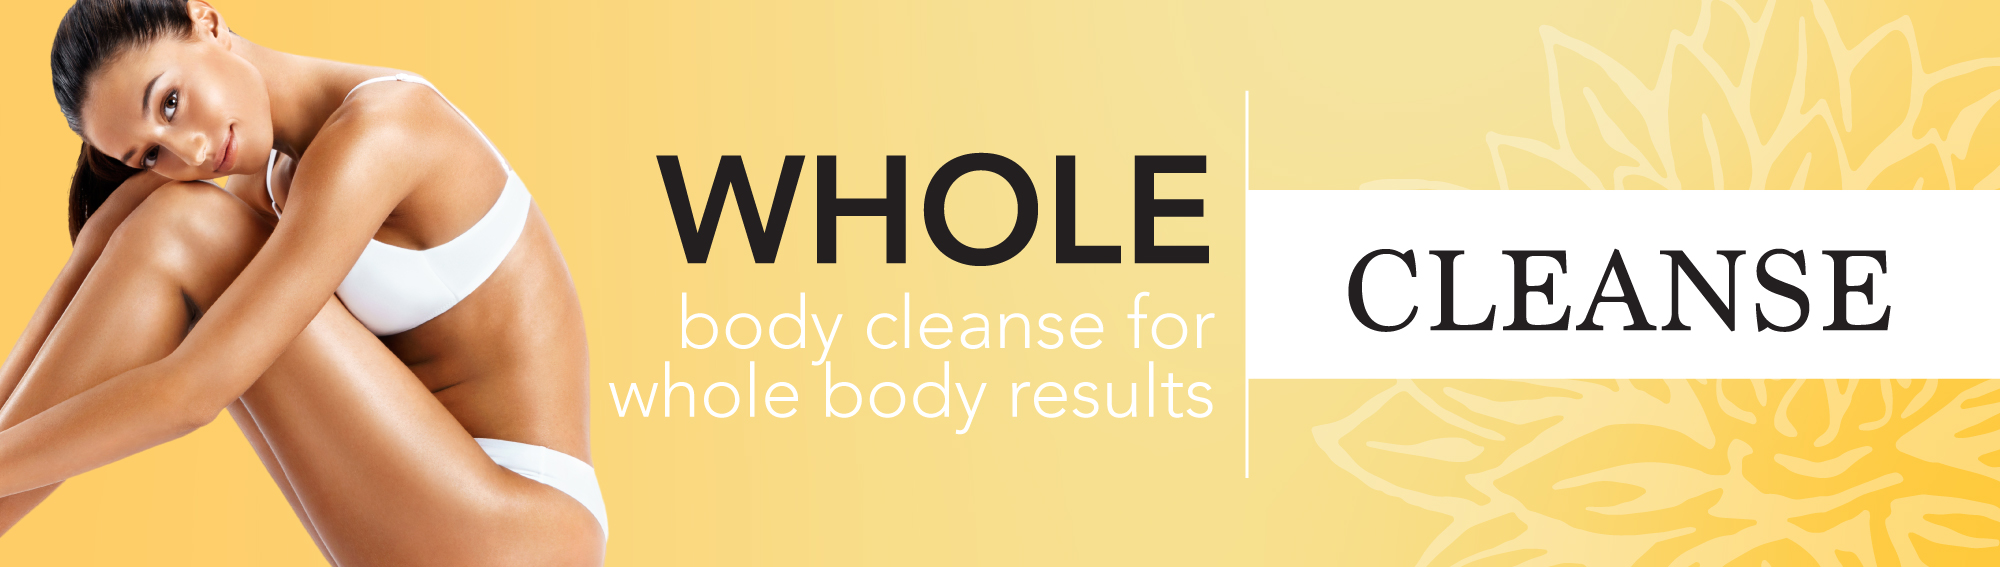 Whole Body Cleanse for Whole Body Results